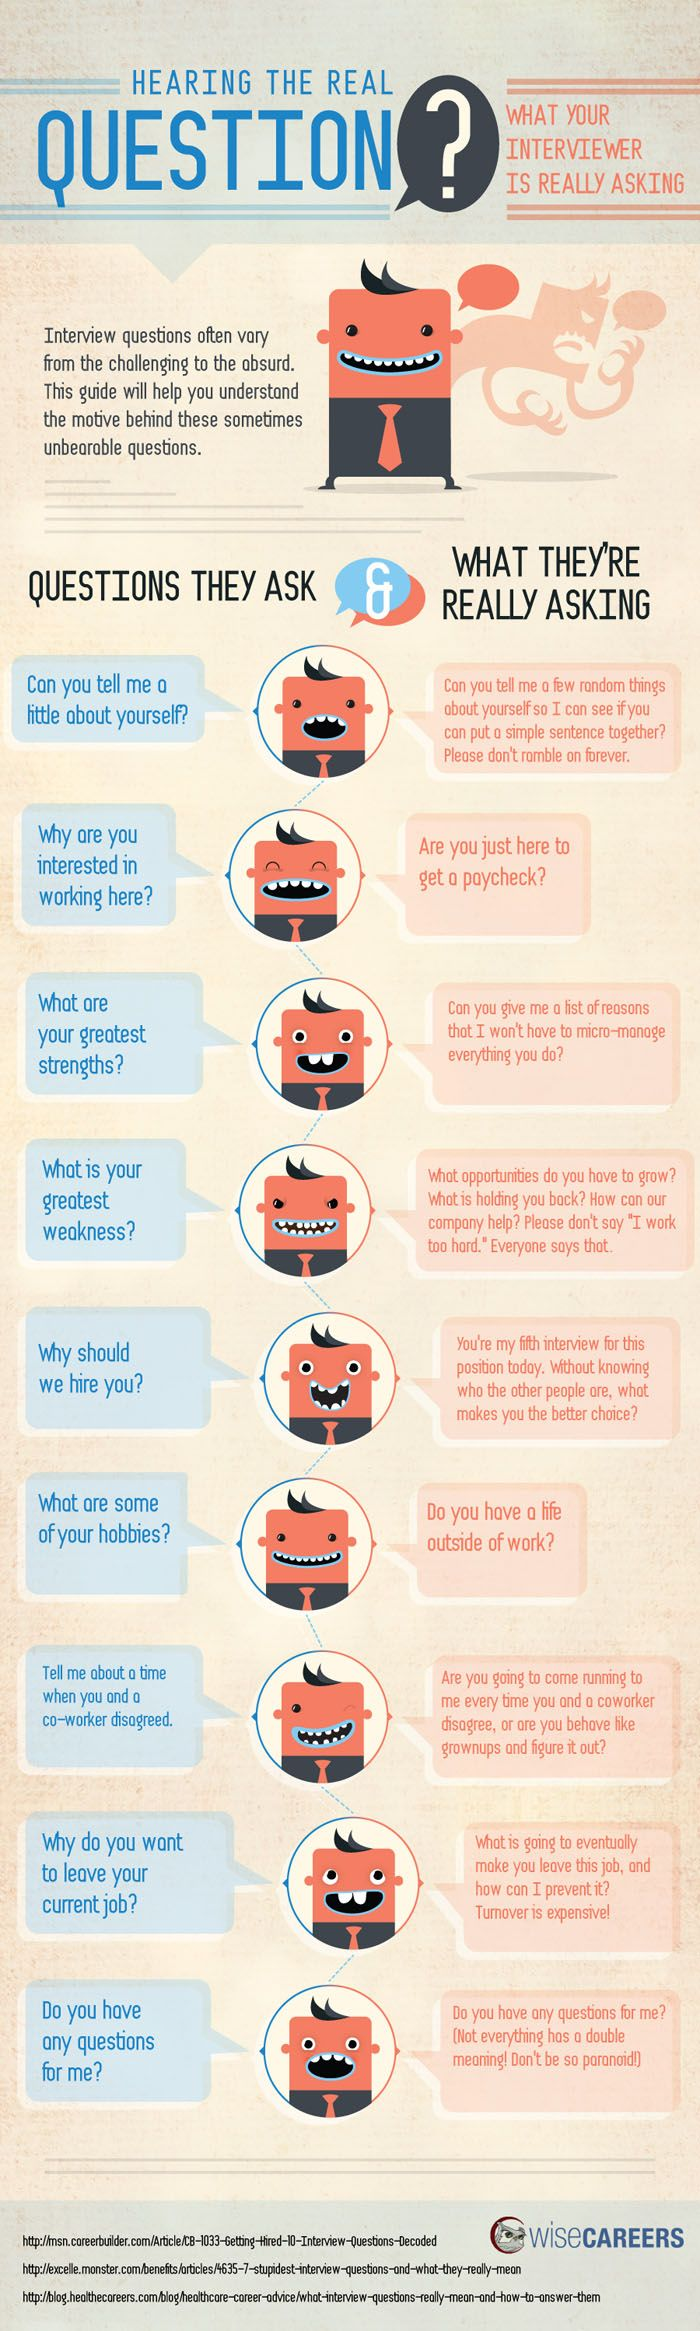 best ideas about accounting interview questions hearing the real question in your interview infographic